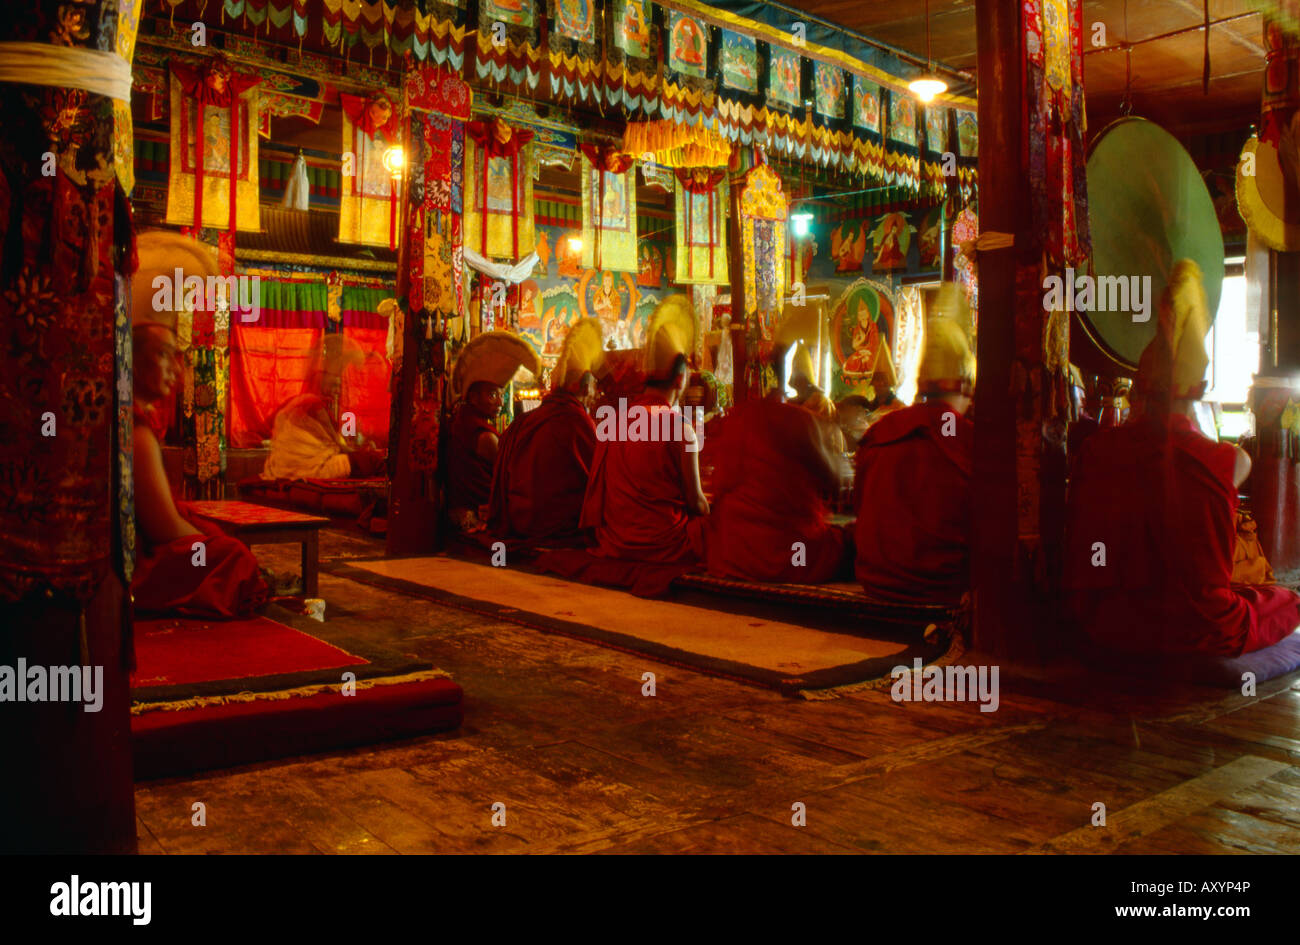 Monks praying in a buddhist temple in Likir Tibet - Stock Image